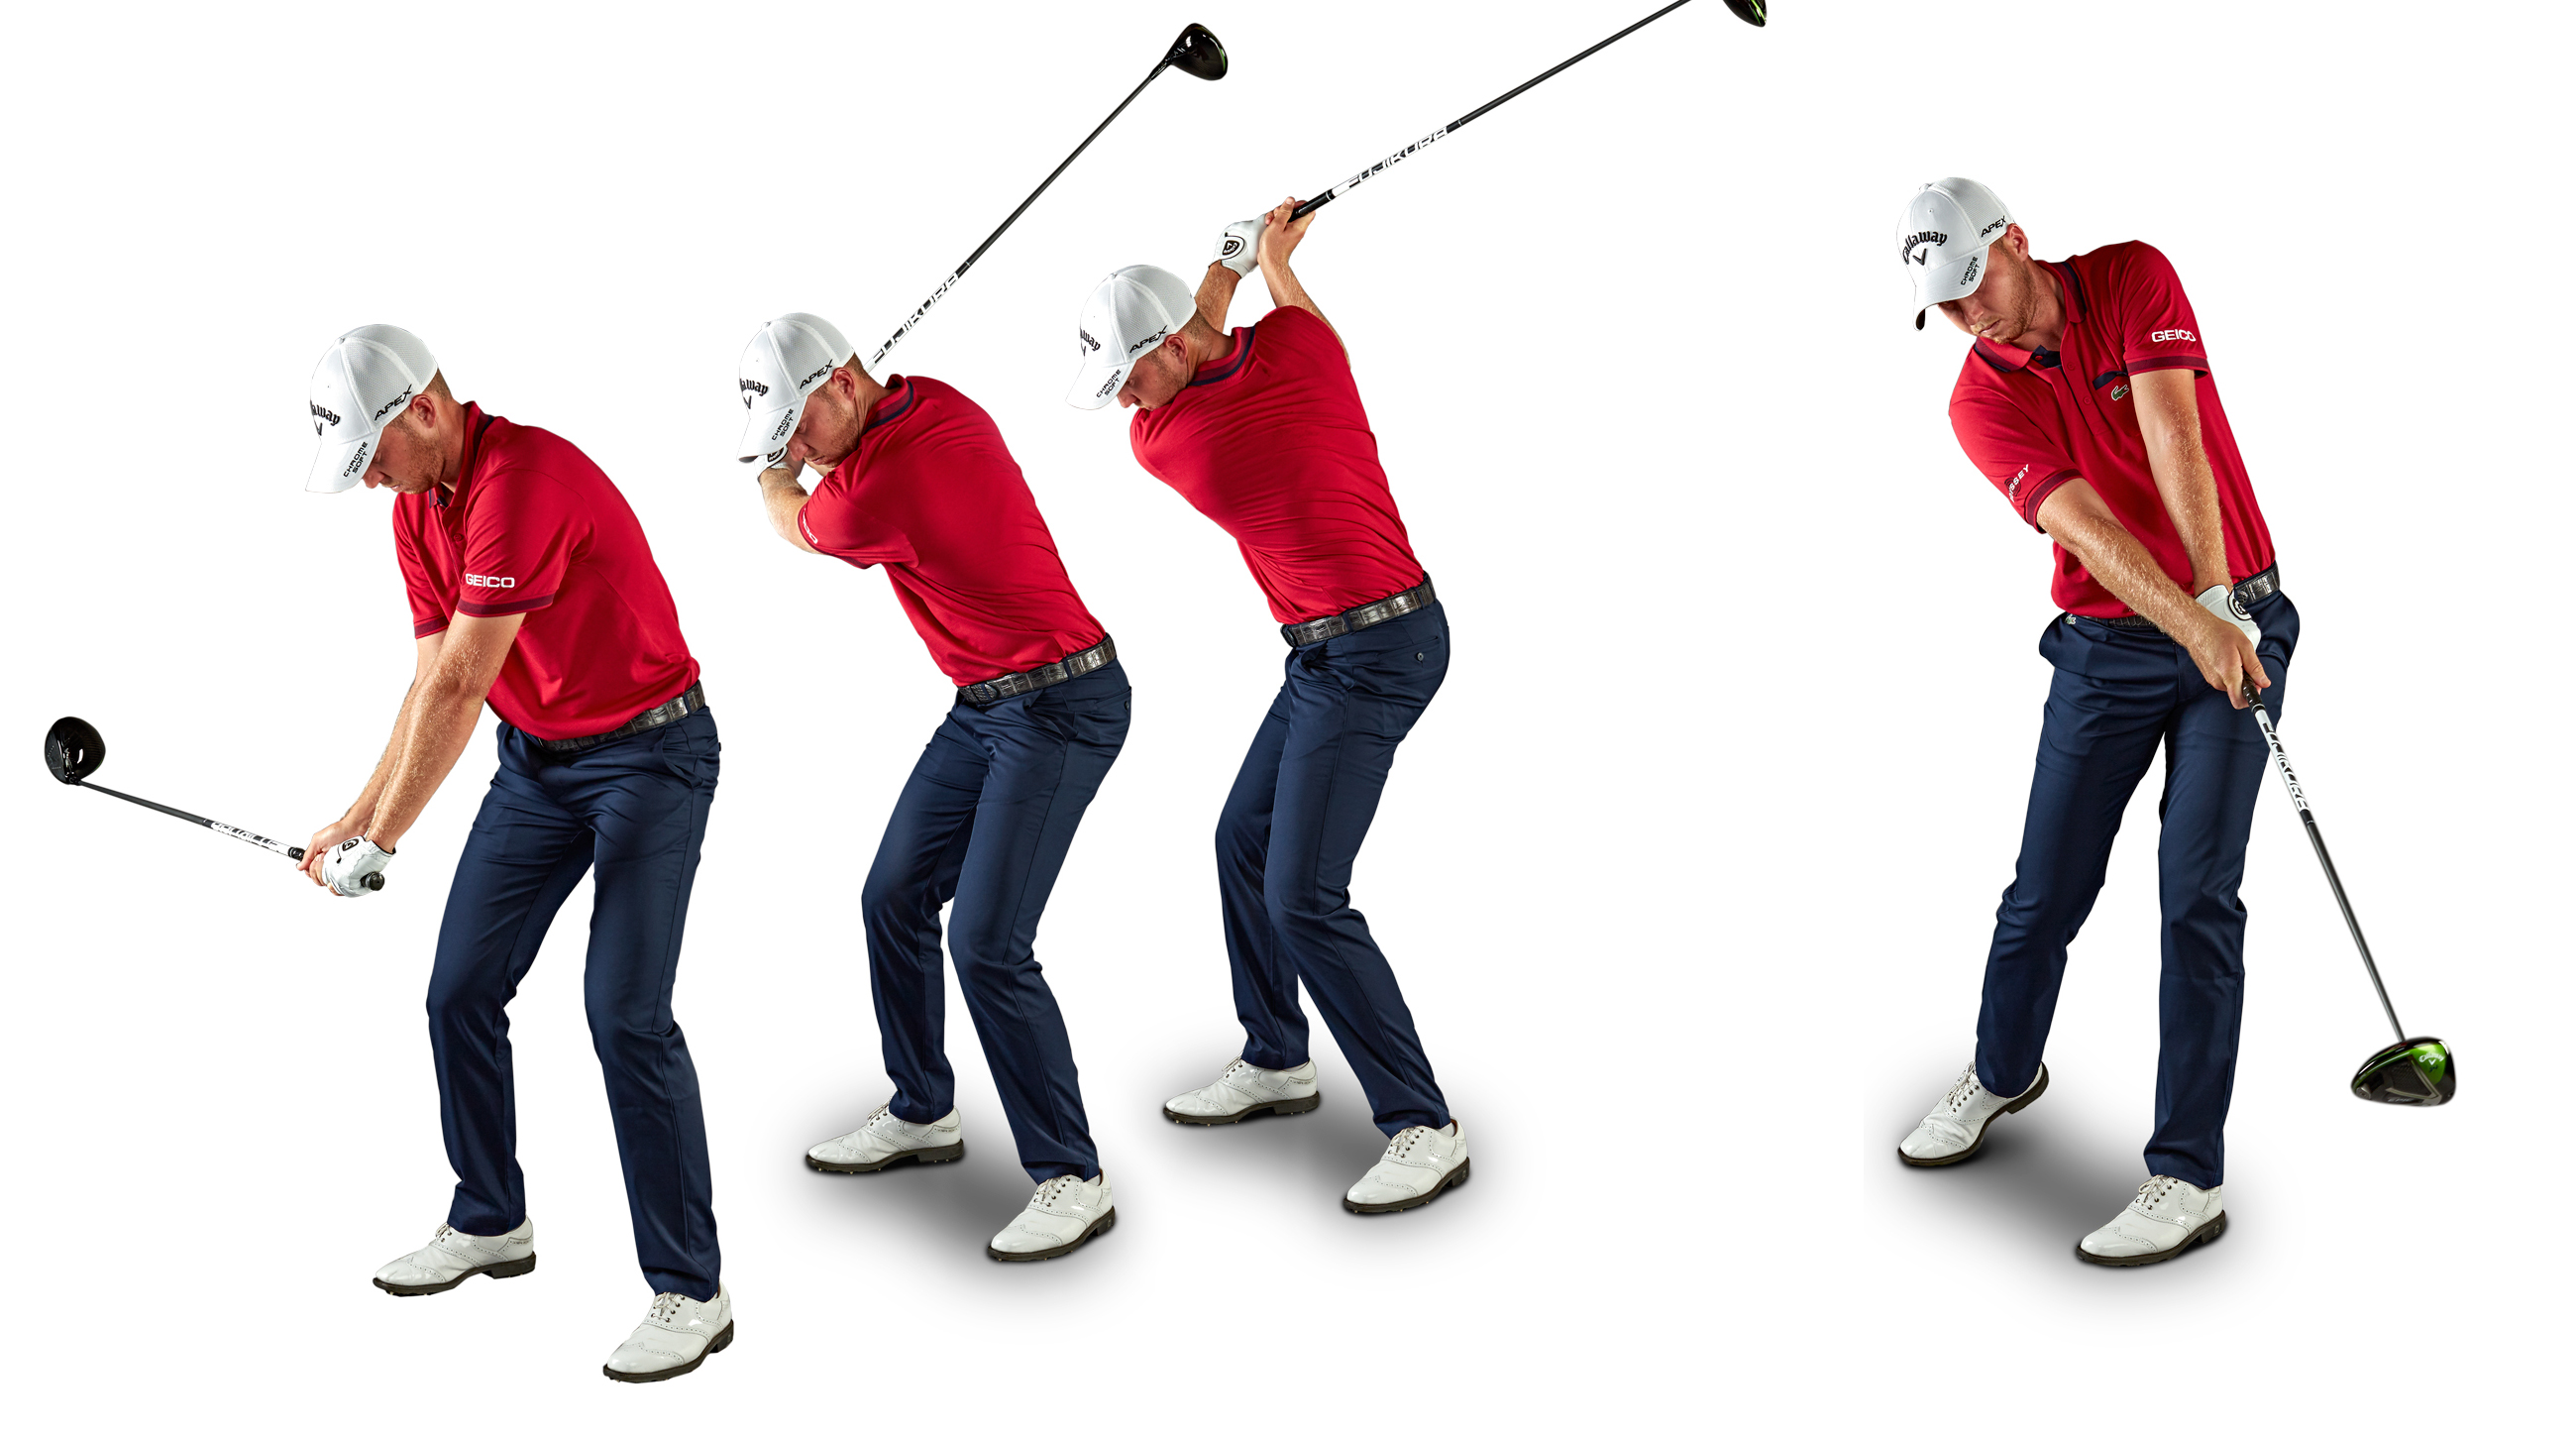 Get good at catching the sweet spot using a half-backswing before moving up to longer swings. On the range, prioritize dead-center contact over speed. If you don't know where the sweet spot is, you won't find it on the course.